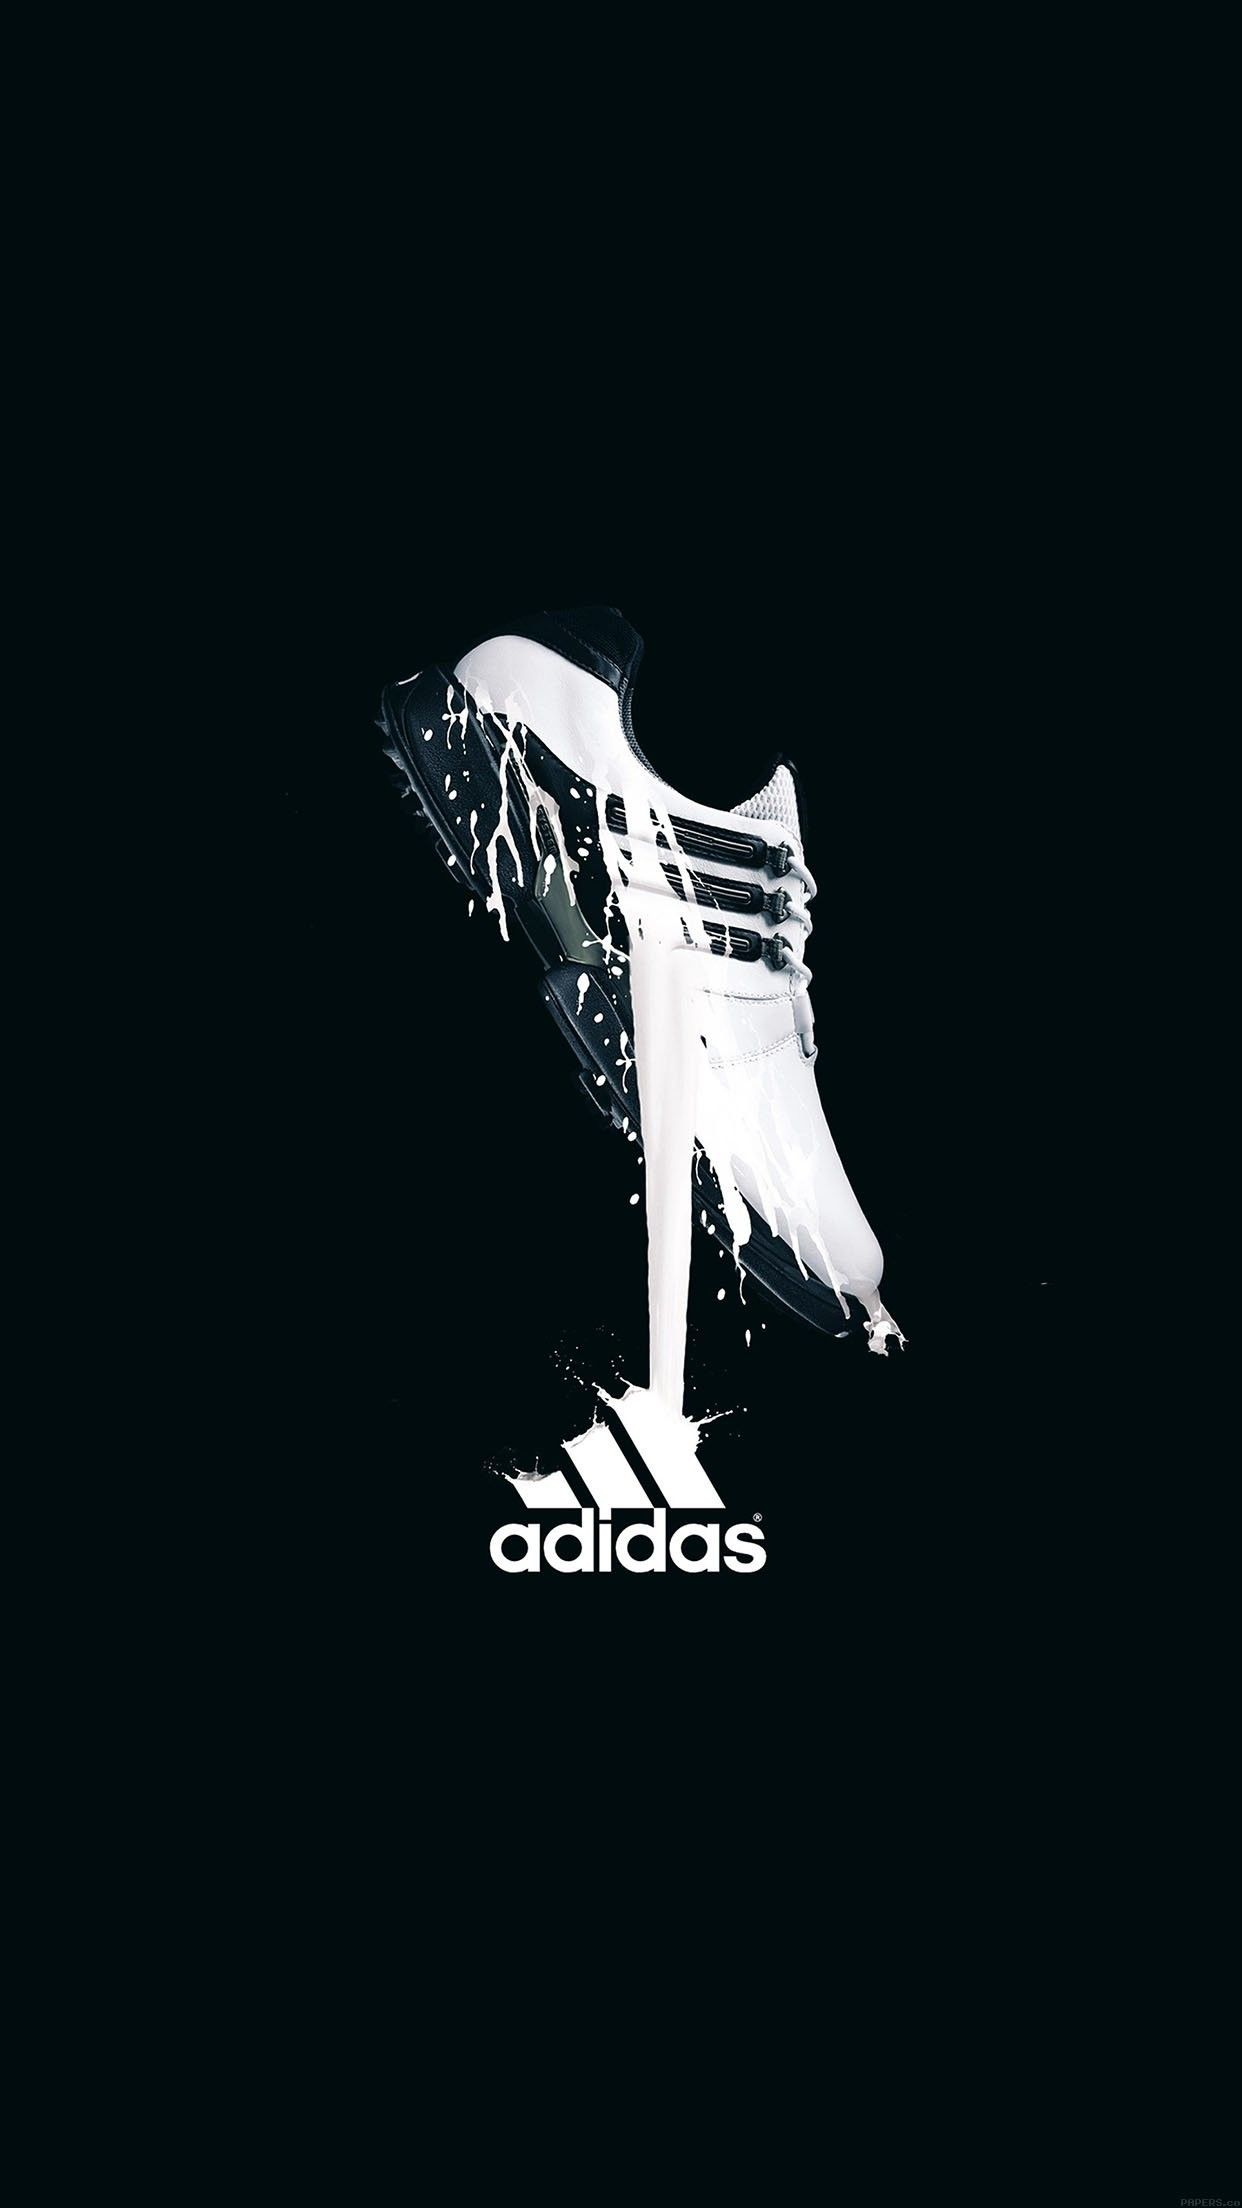 1242x2208 78+ Adidas Iphone Wallpapers on WallpaperPlay